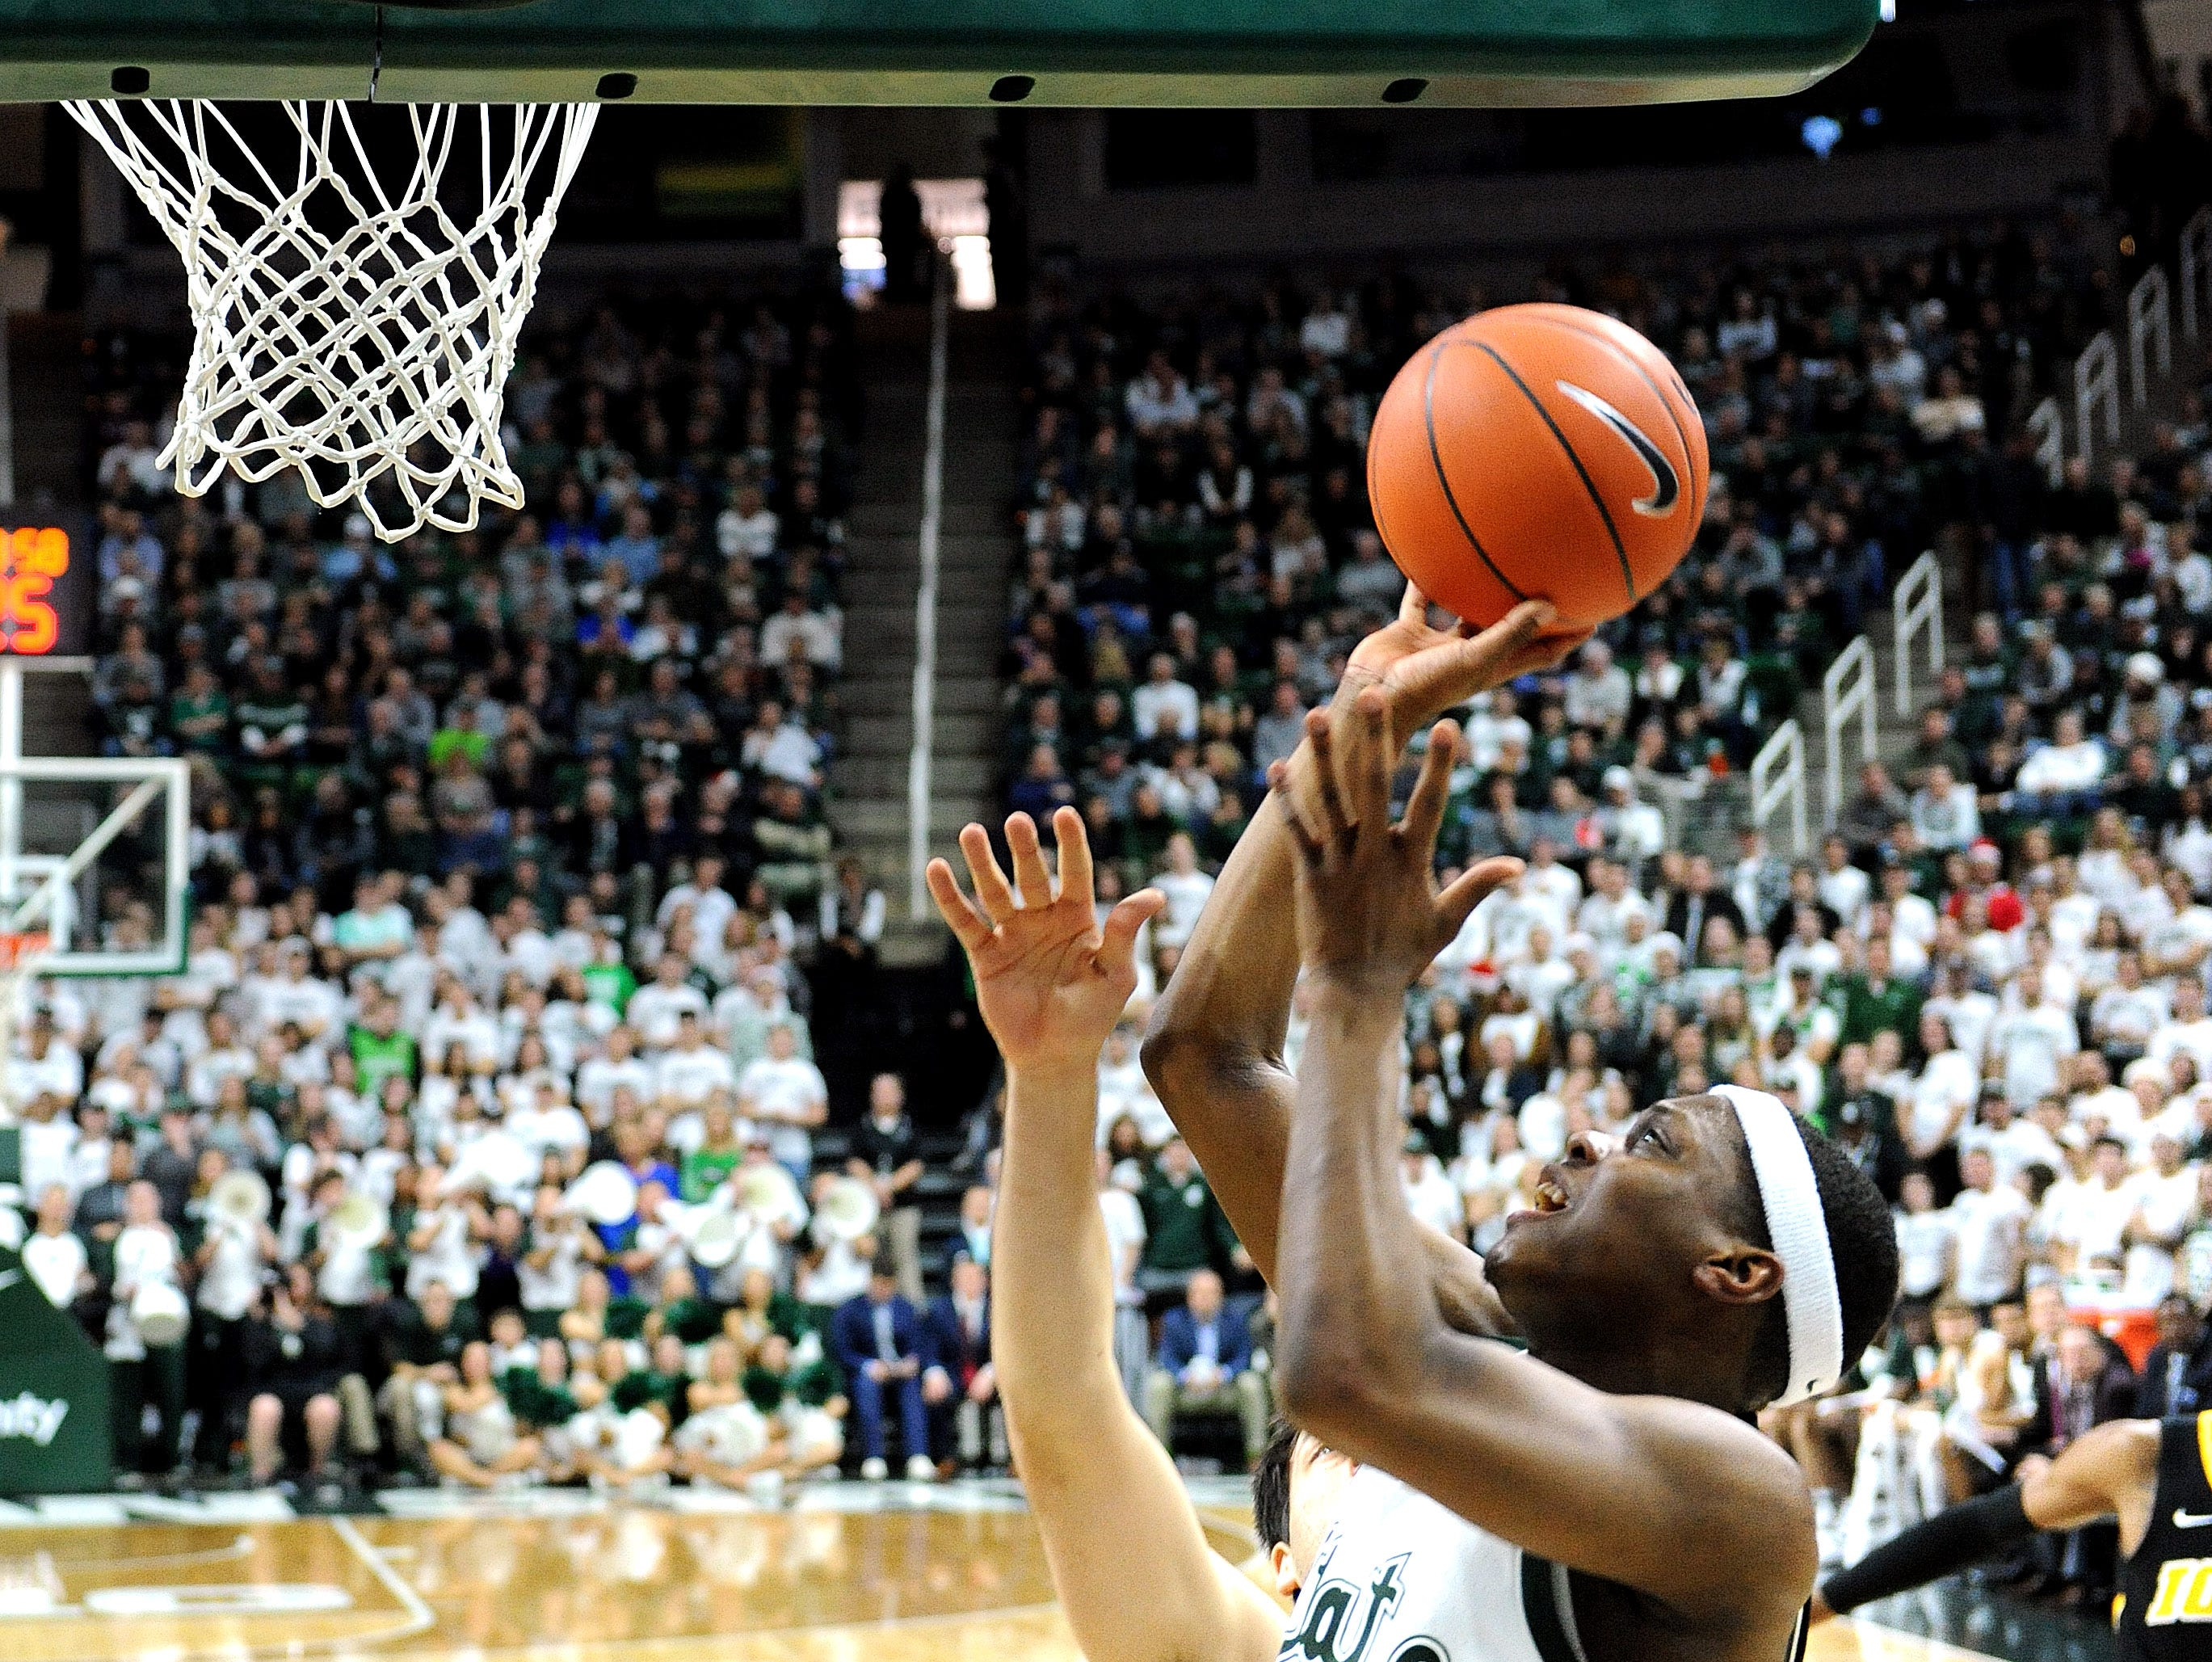 Cassius Winston drives in and puts up a short shot in the first half.